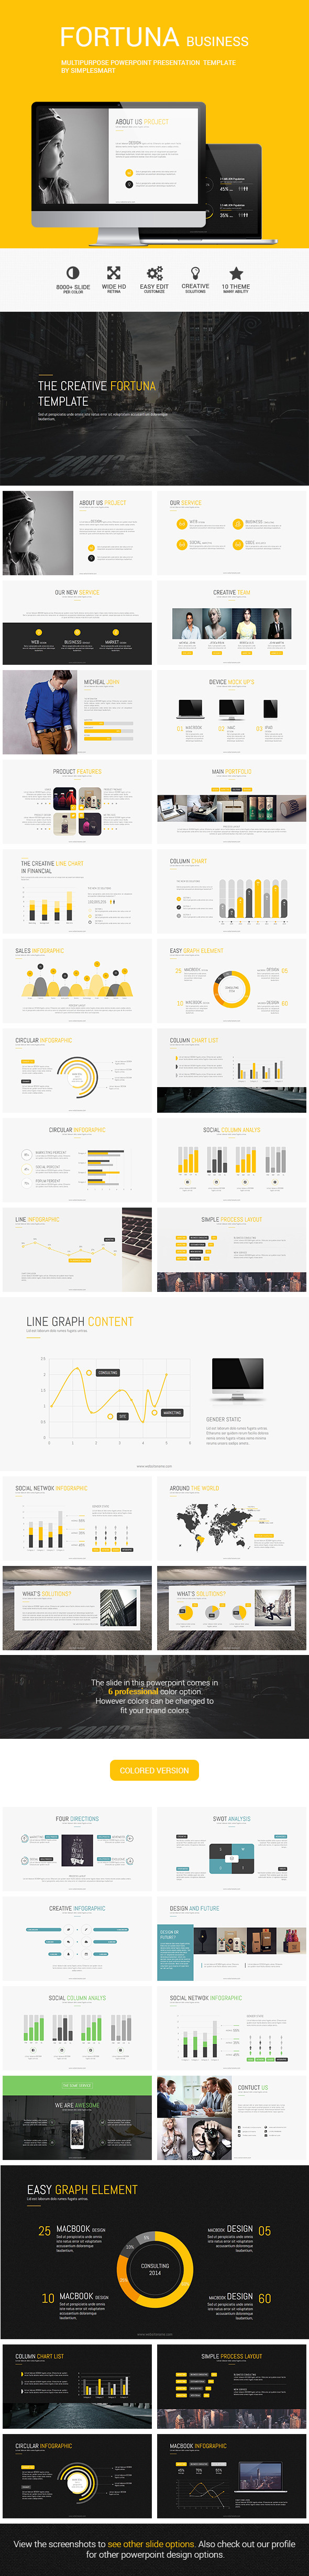 GraphicRiver FORTUNA Multipurpose Presentation Template 8851774